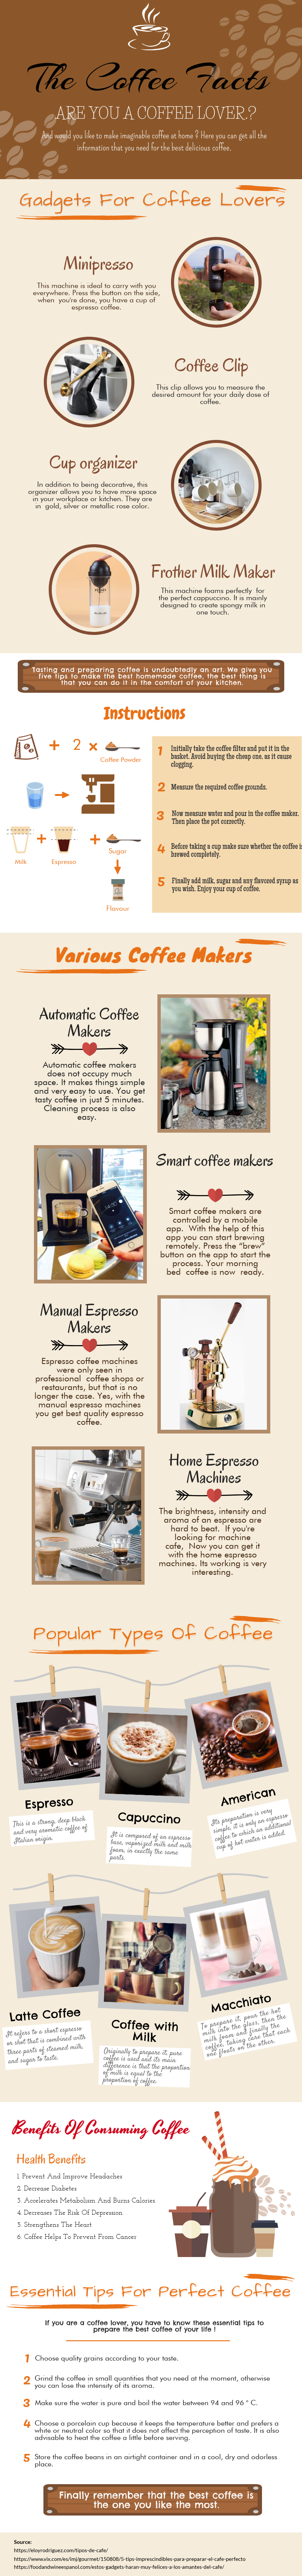 Choose Gadgets For Brewing Coffee At Home